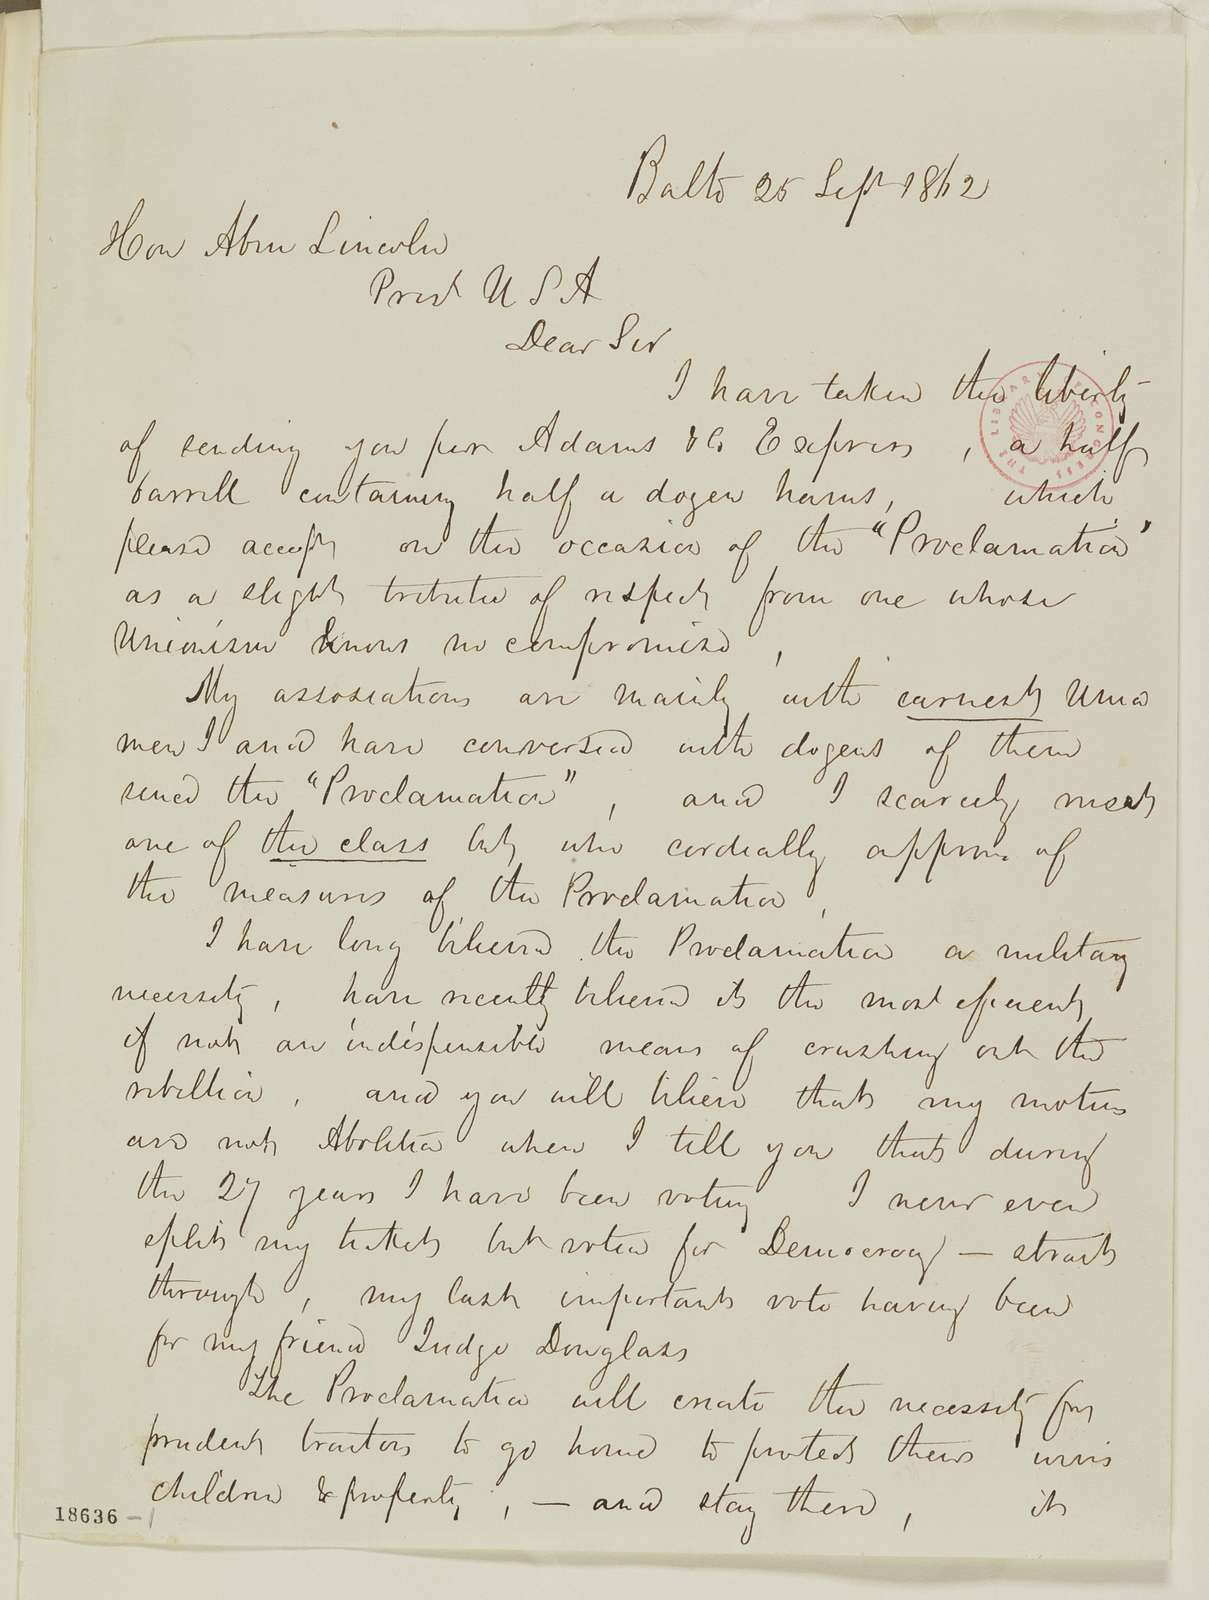 Abraham Lincoln papers: Series 1. General Correspondence. 1833-1916: George Cassaru to Abraham Lincoln, Thursday, September 25, 1862 (Sends hams)